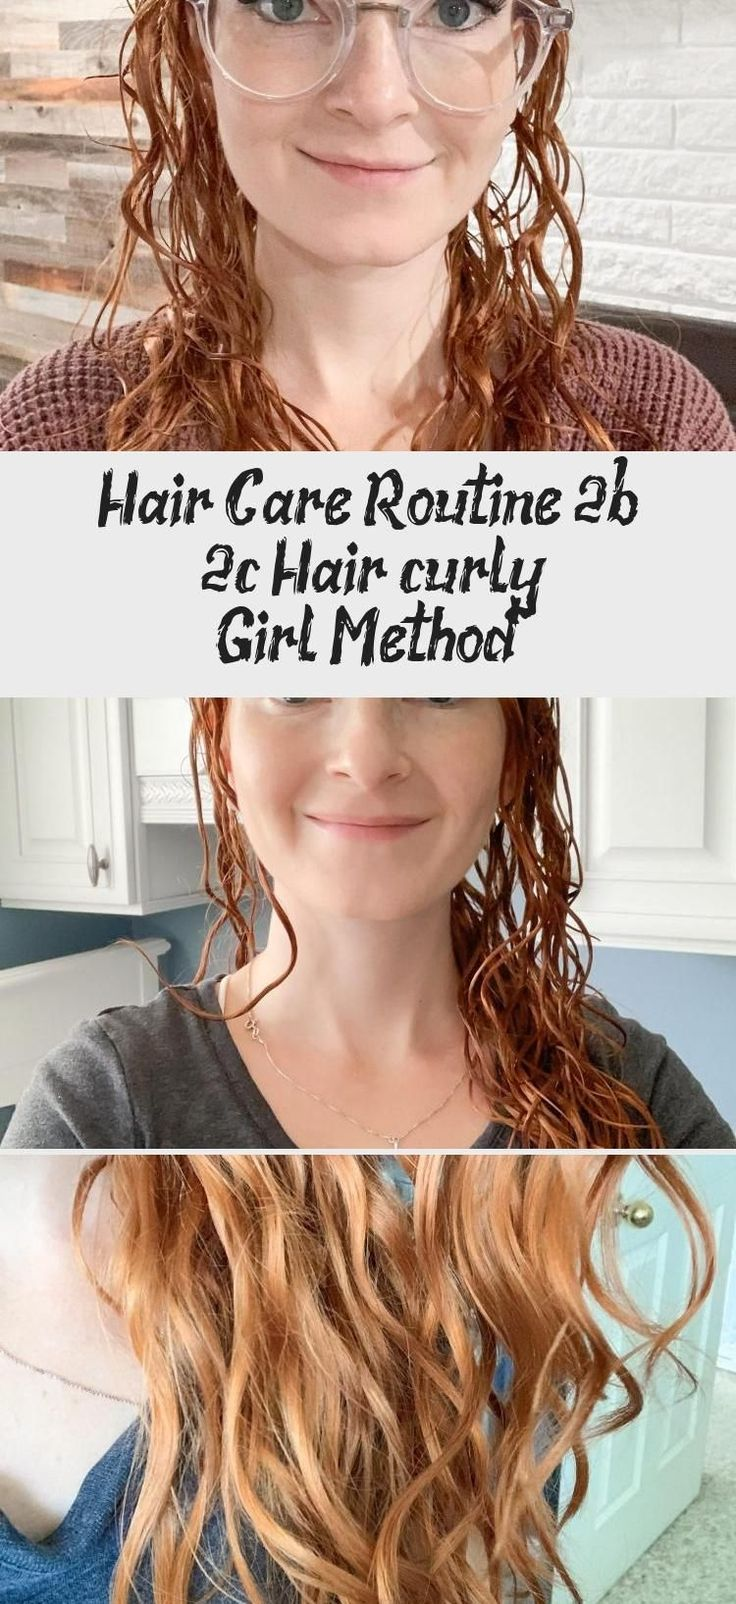 Hair care routine 2b 2c Hair (curly girl method